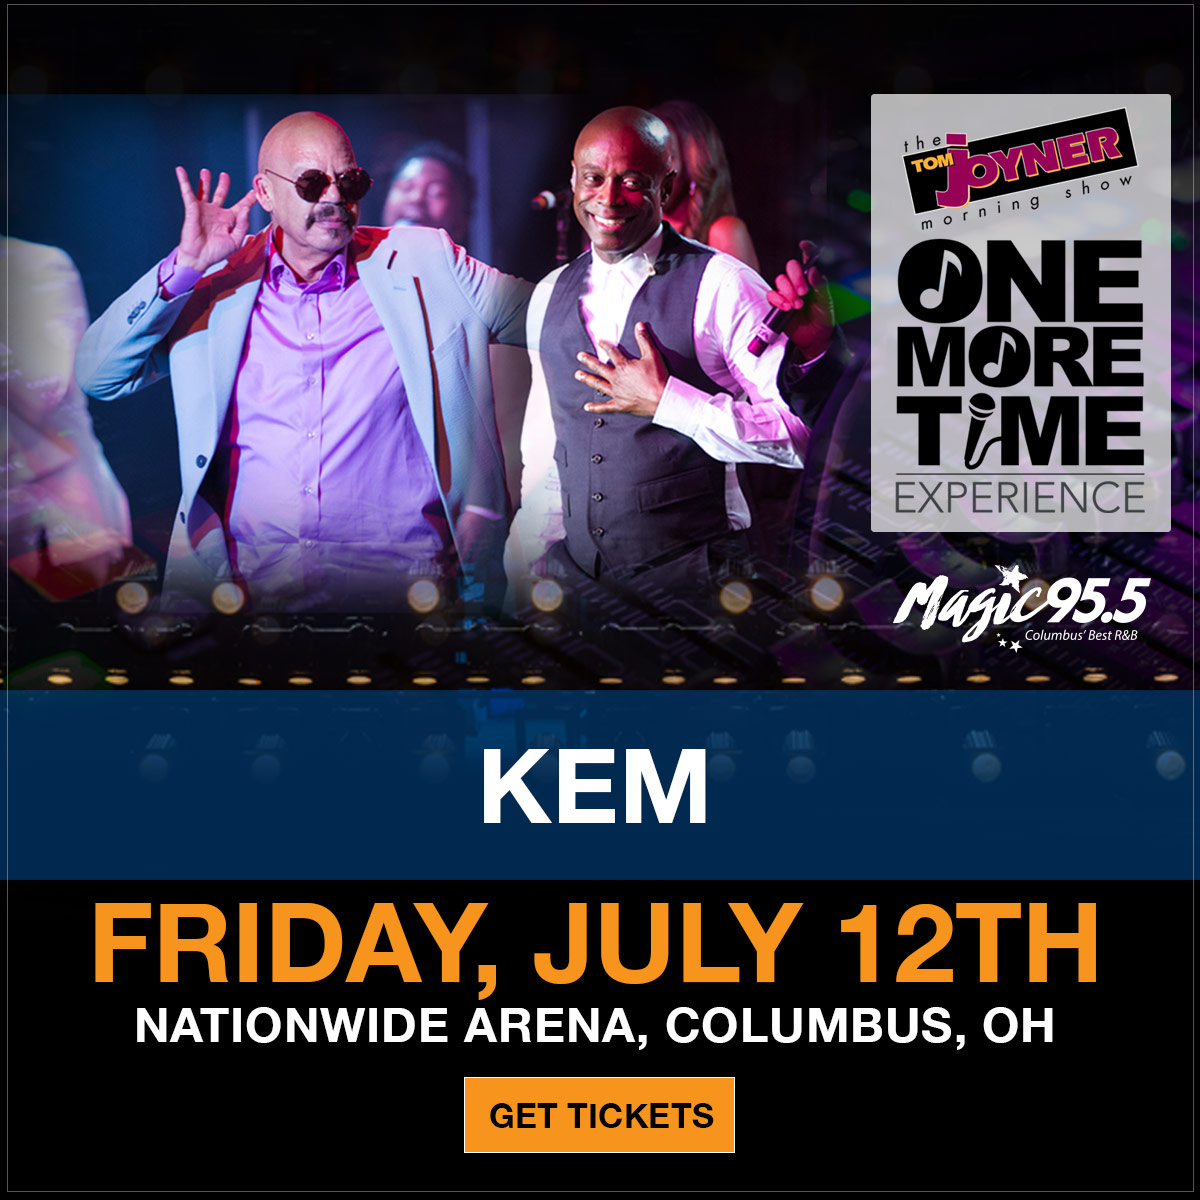 Tom Joyner One More Time Experience columbus